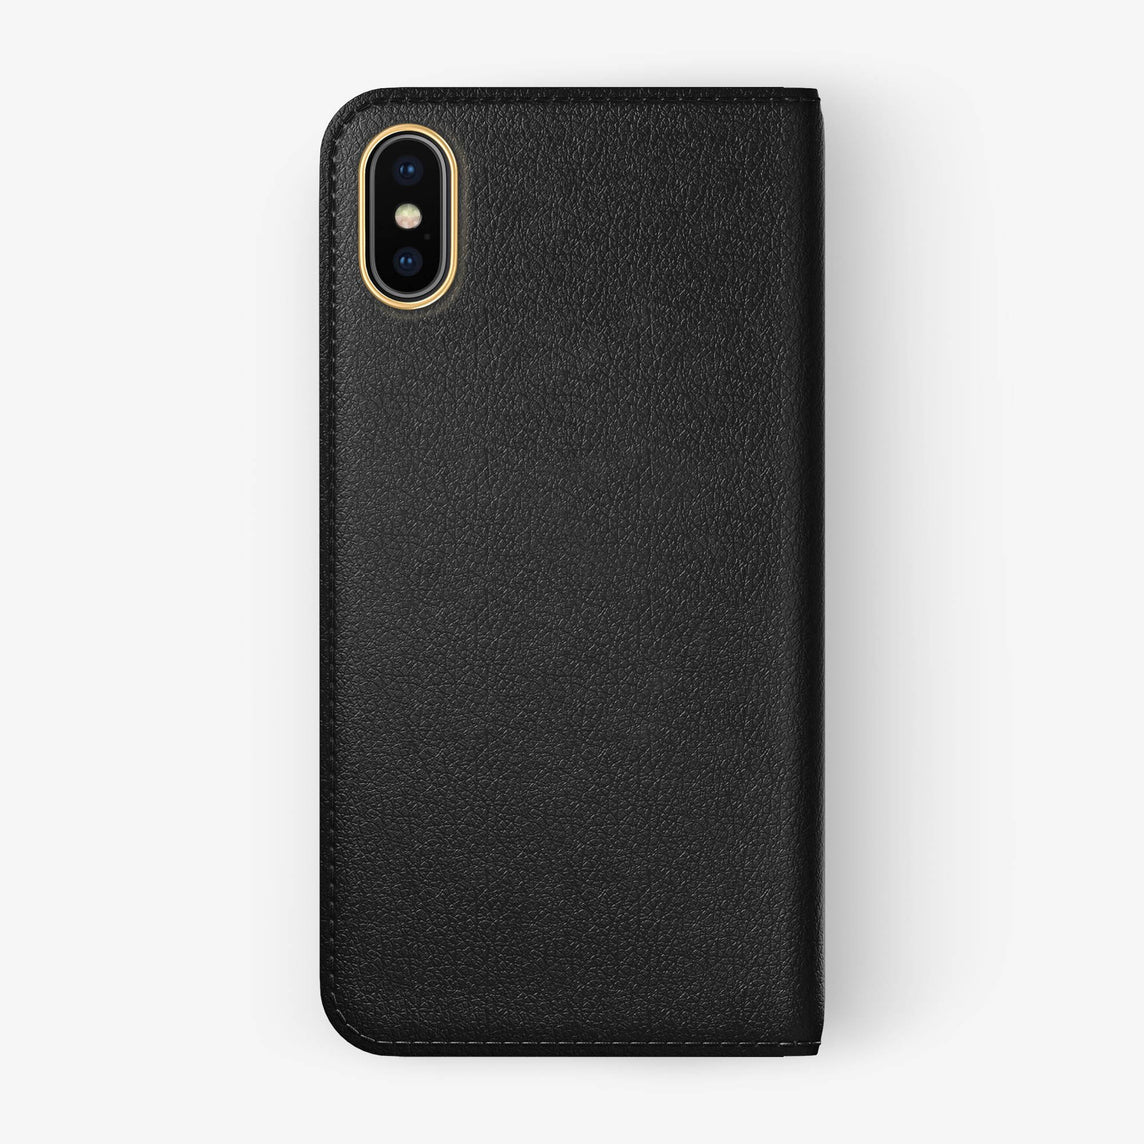 Black Calfskin iPhone Folio Case for iPhone X finishing yellow gold - Hadoro Luxury Cases img5